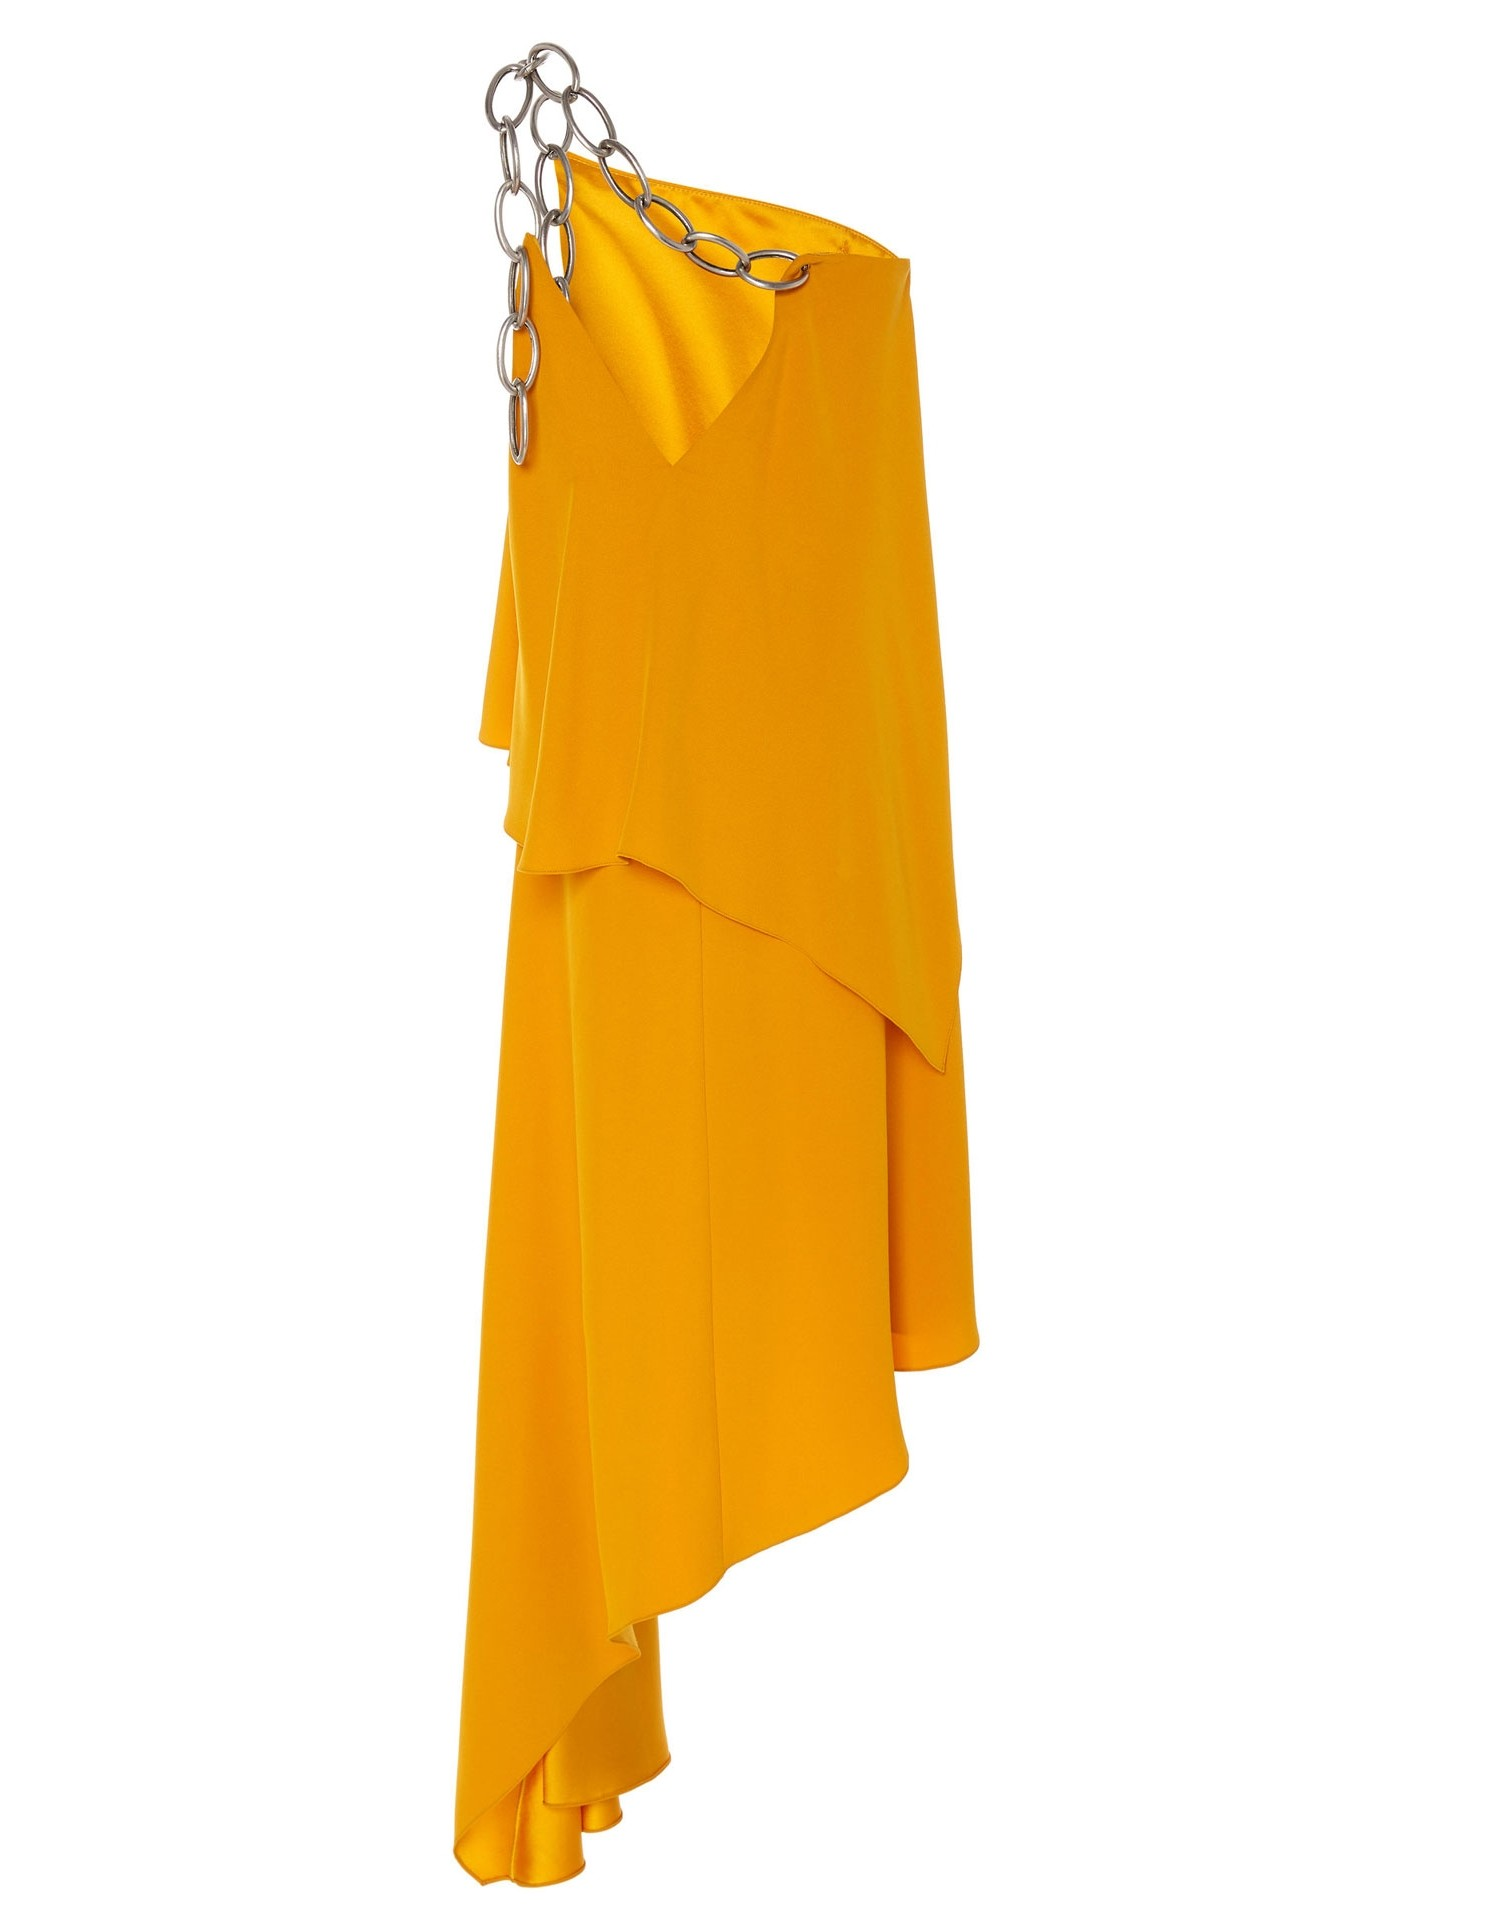 Shoulder Chain Draped Dress in Yellow Back